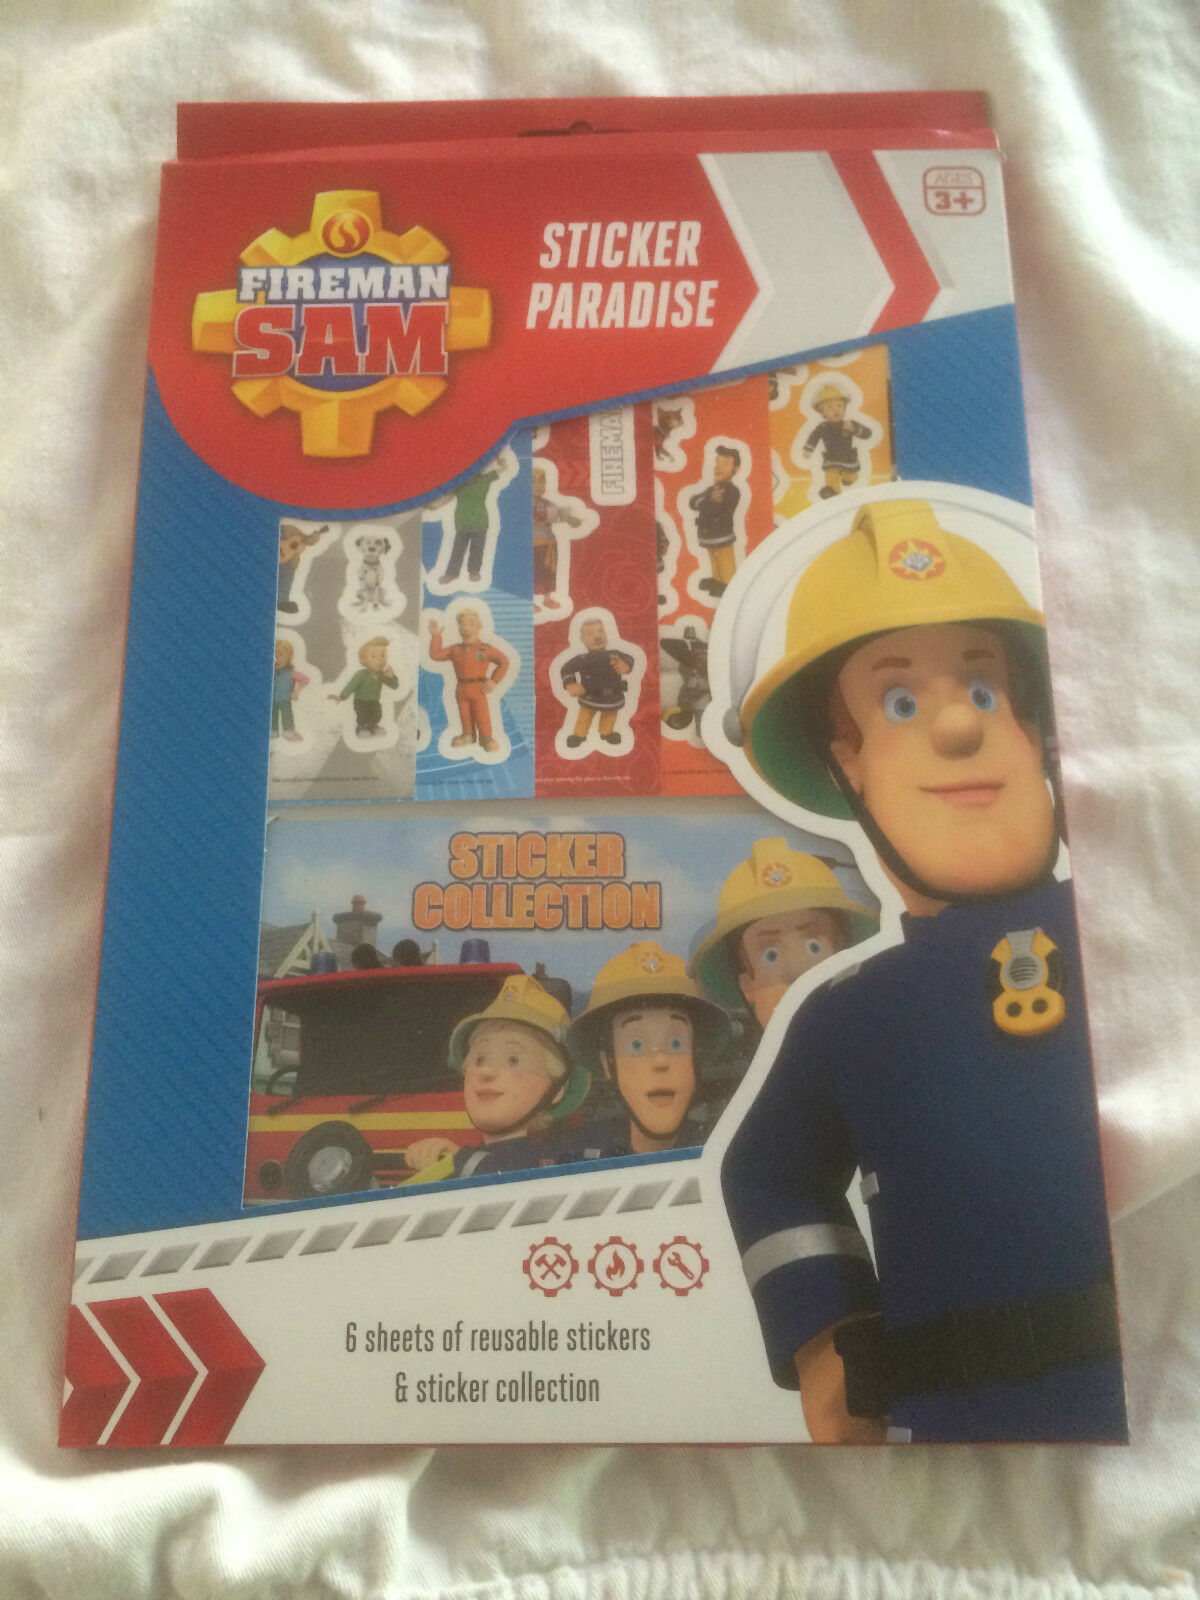 fireman sam sticker paradise 6 sheets of resuable stickers